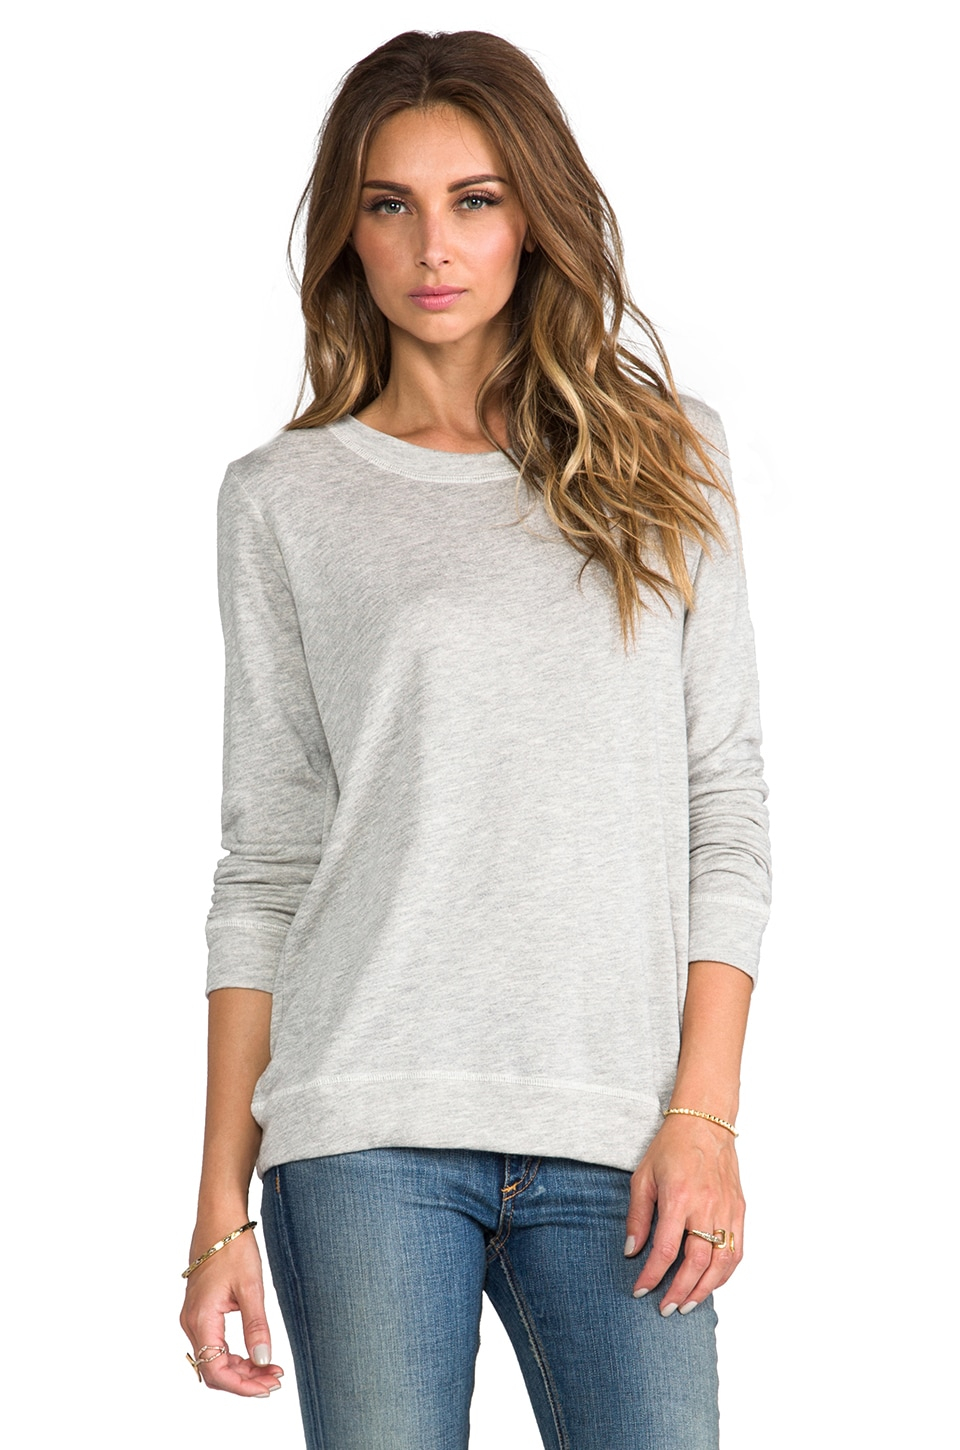 The Lady & the Sailor Classic Crew Sweatshirt in Grey Terry